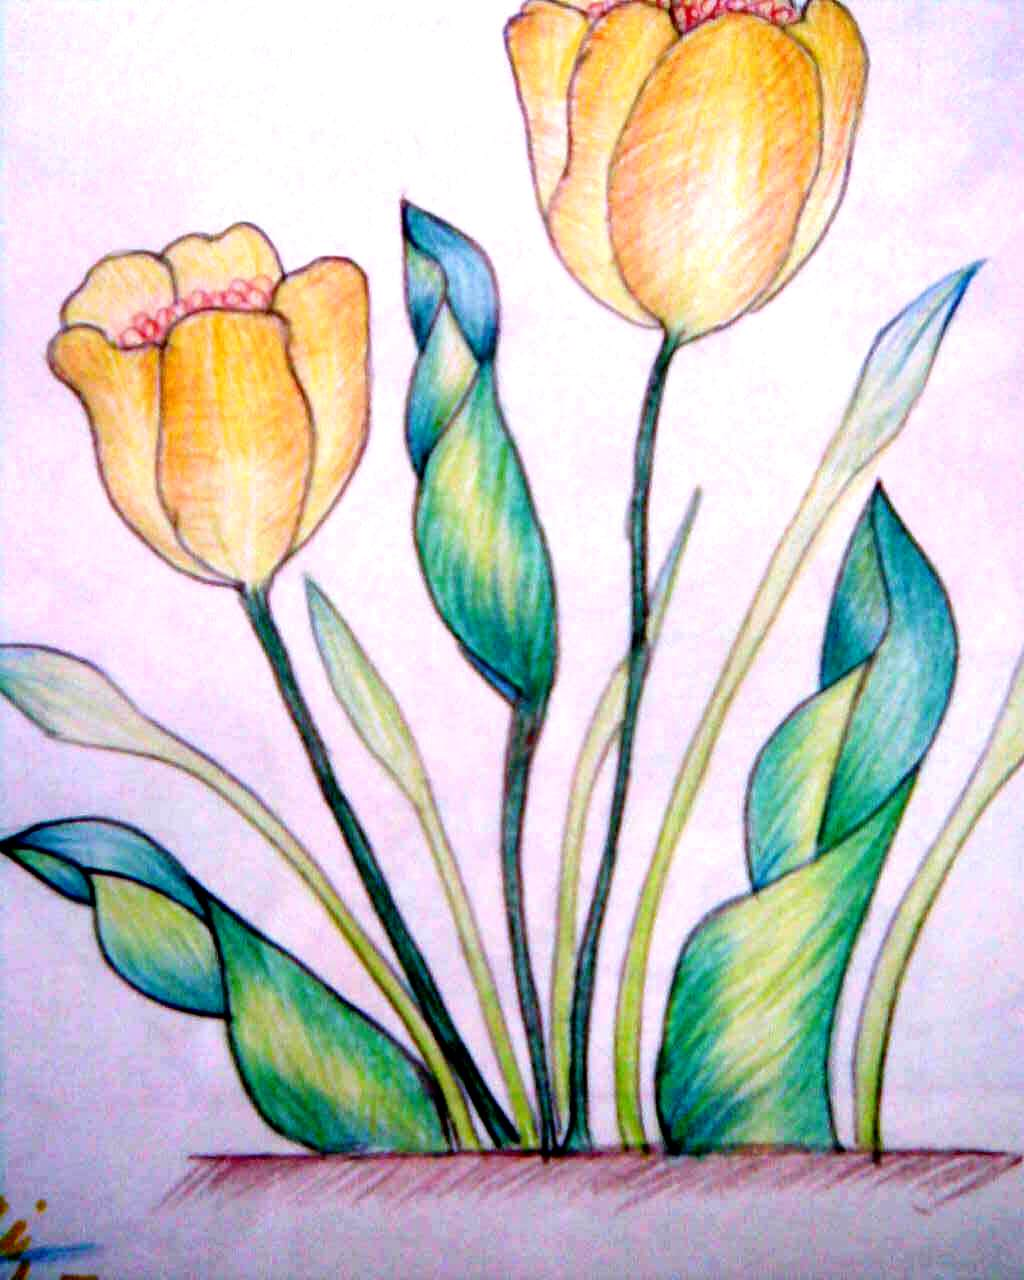 Boundless24X7 - Paintings and Drawings: Colour Pencil Shading